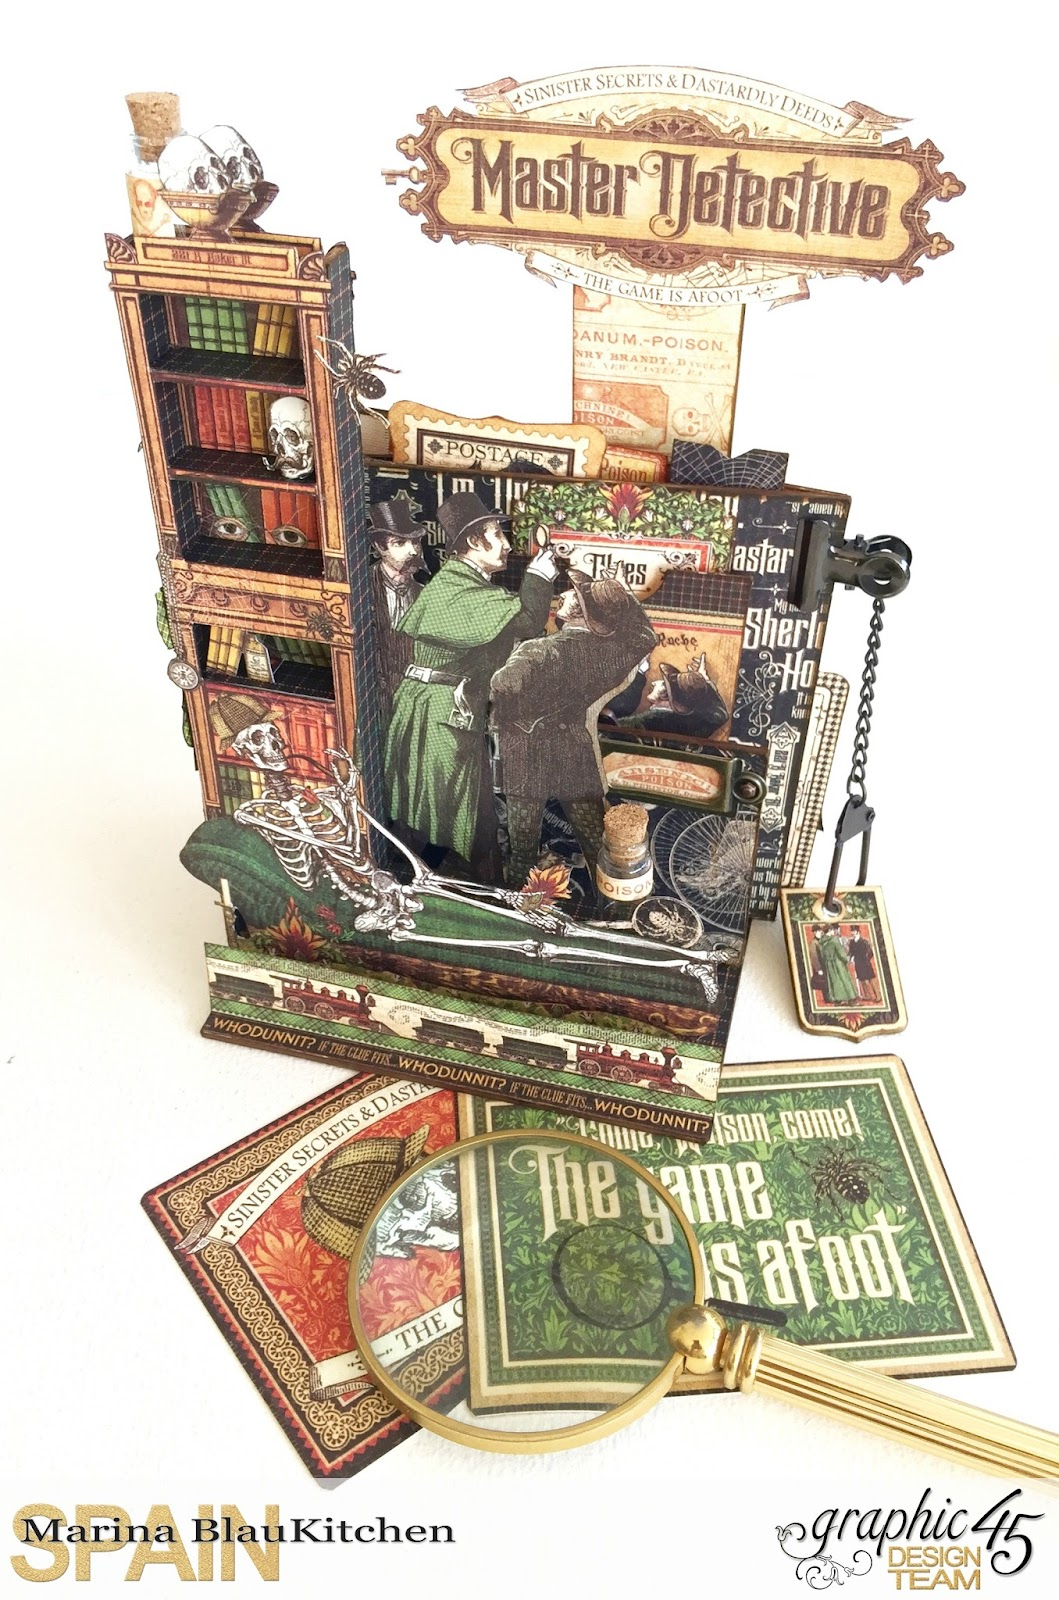 Stand and Mini Album Master Detective by Marina Blaukitchen Product by Graphic 45 photo 32.jpg